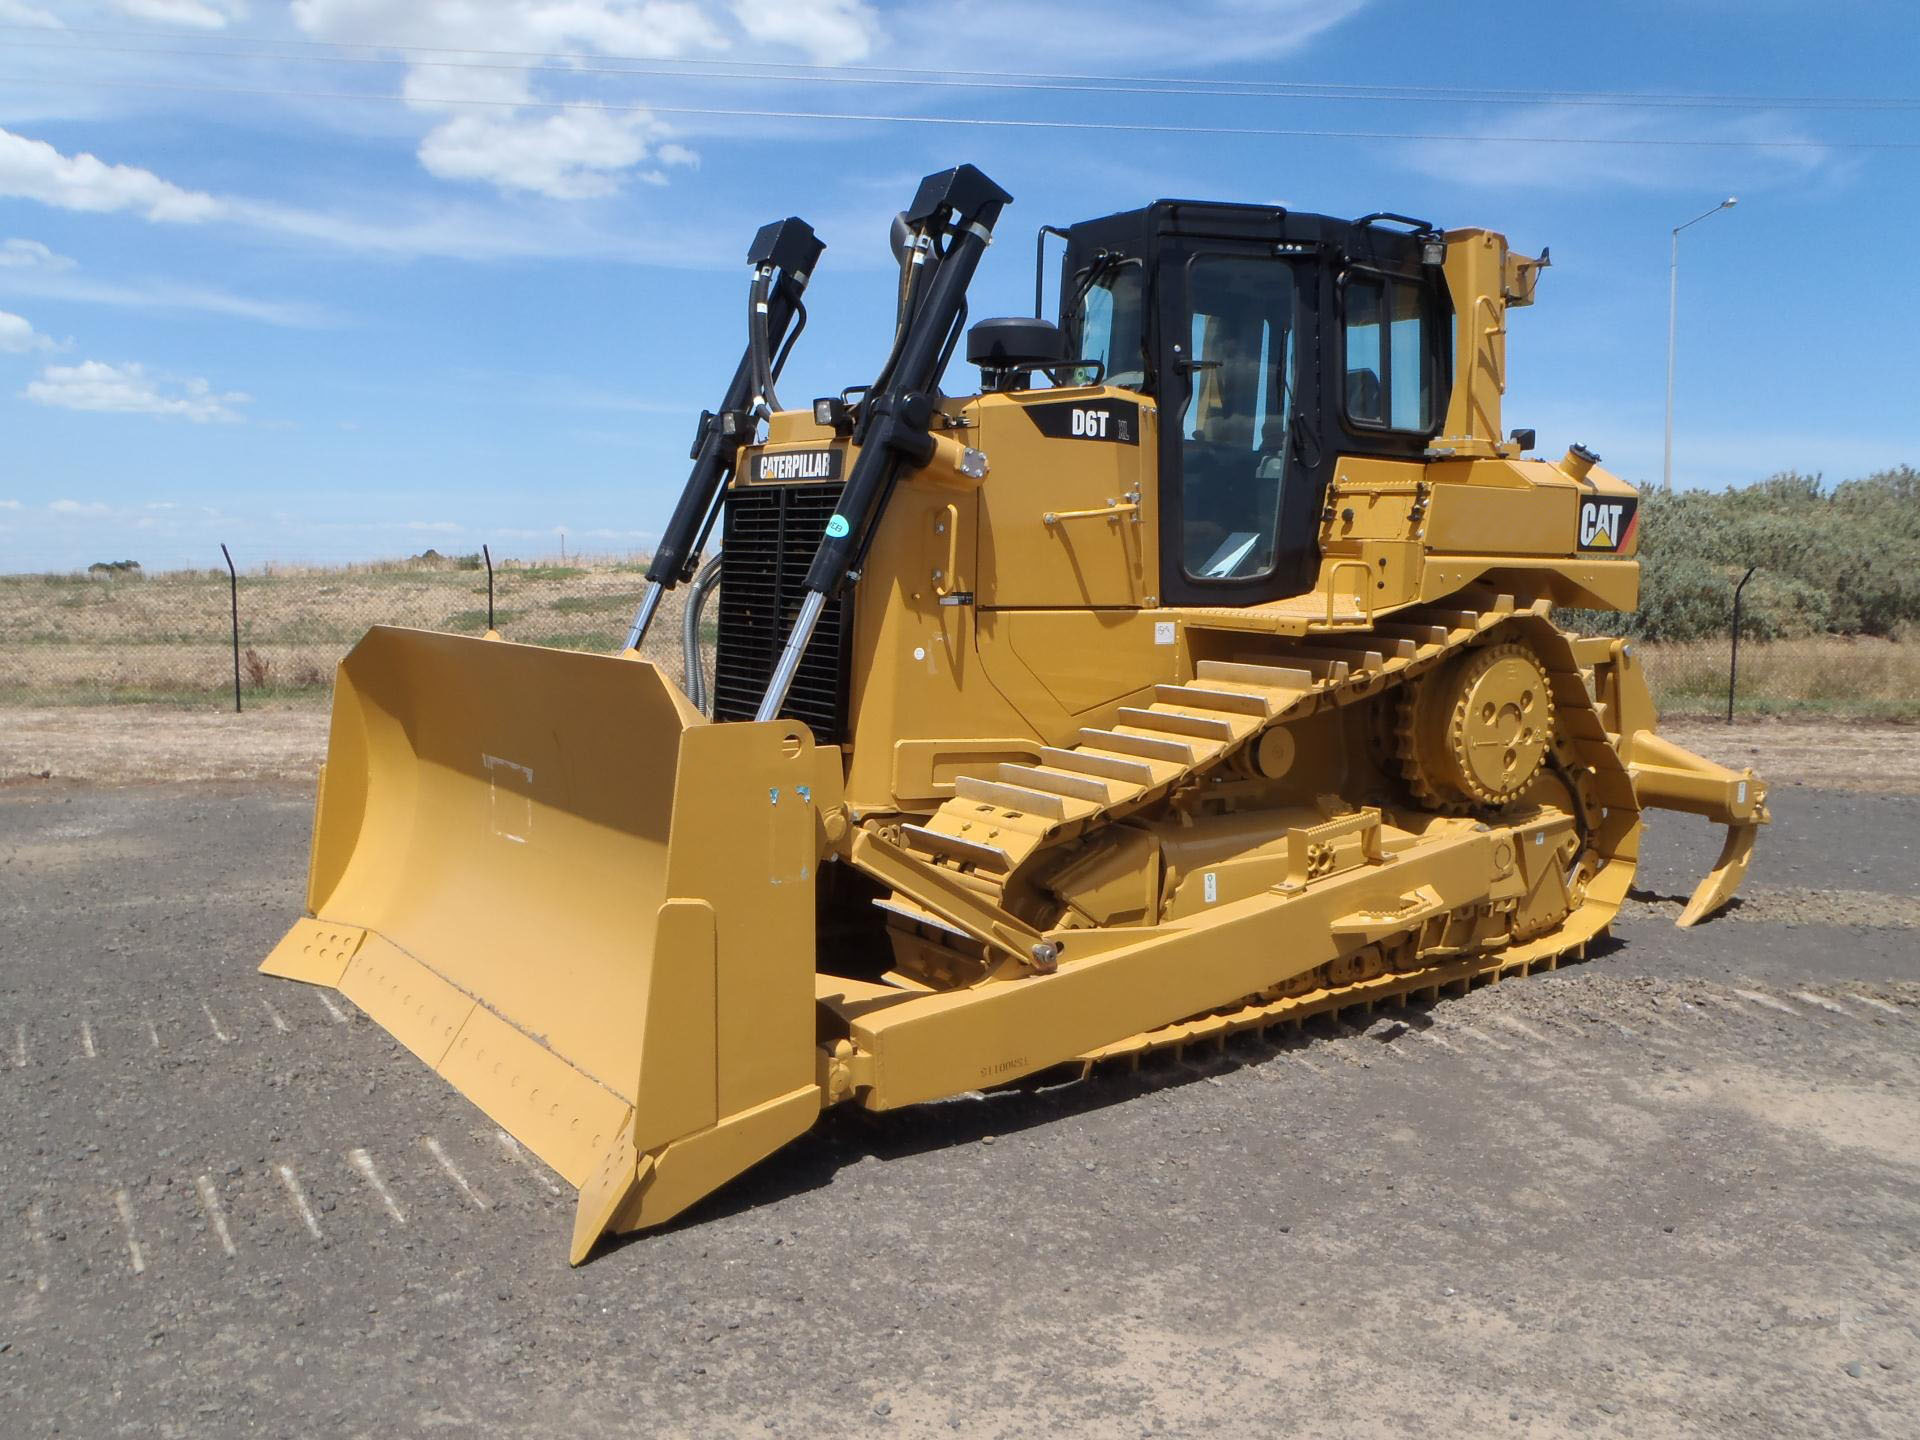 Used Crawler Dozers For Sale in USA | Buy Used Crawler Dozers